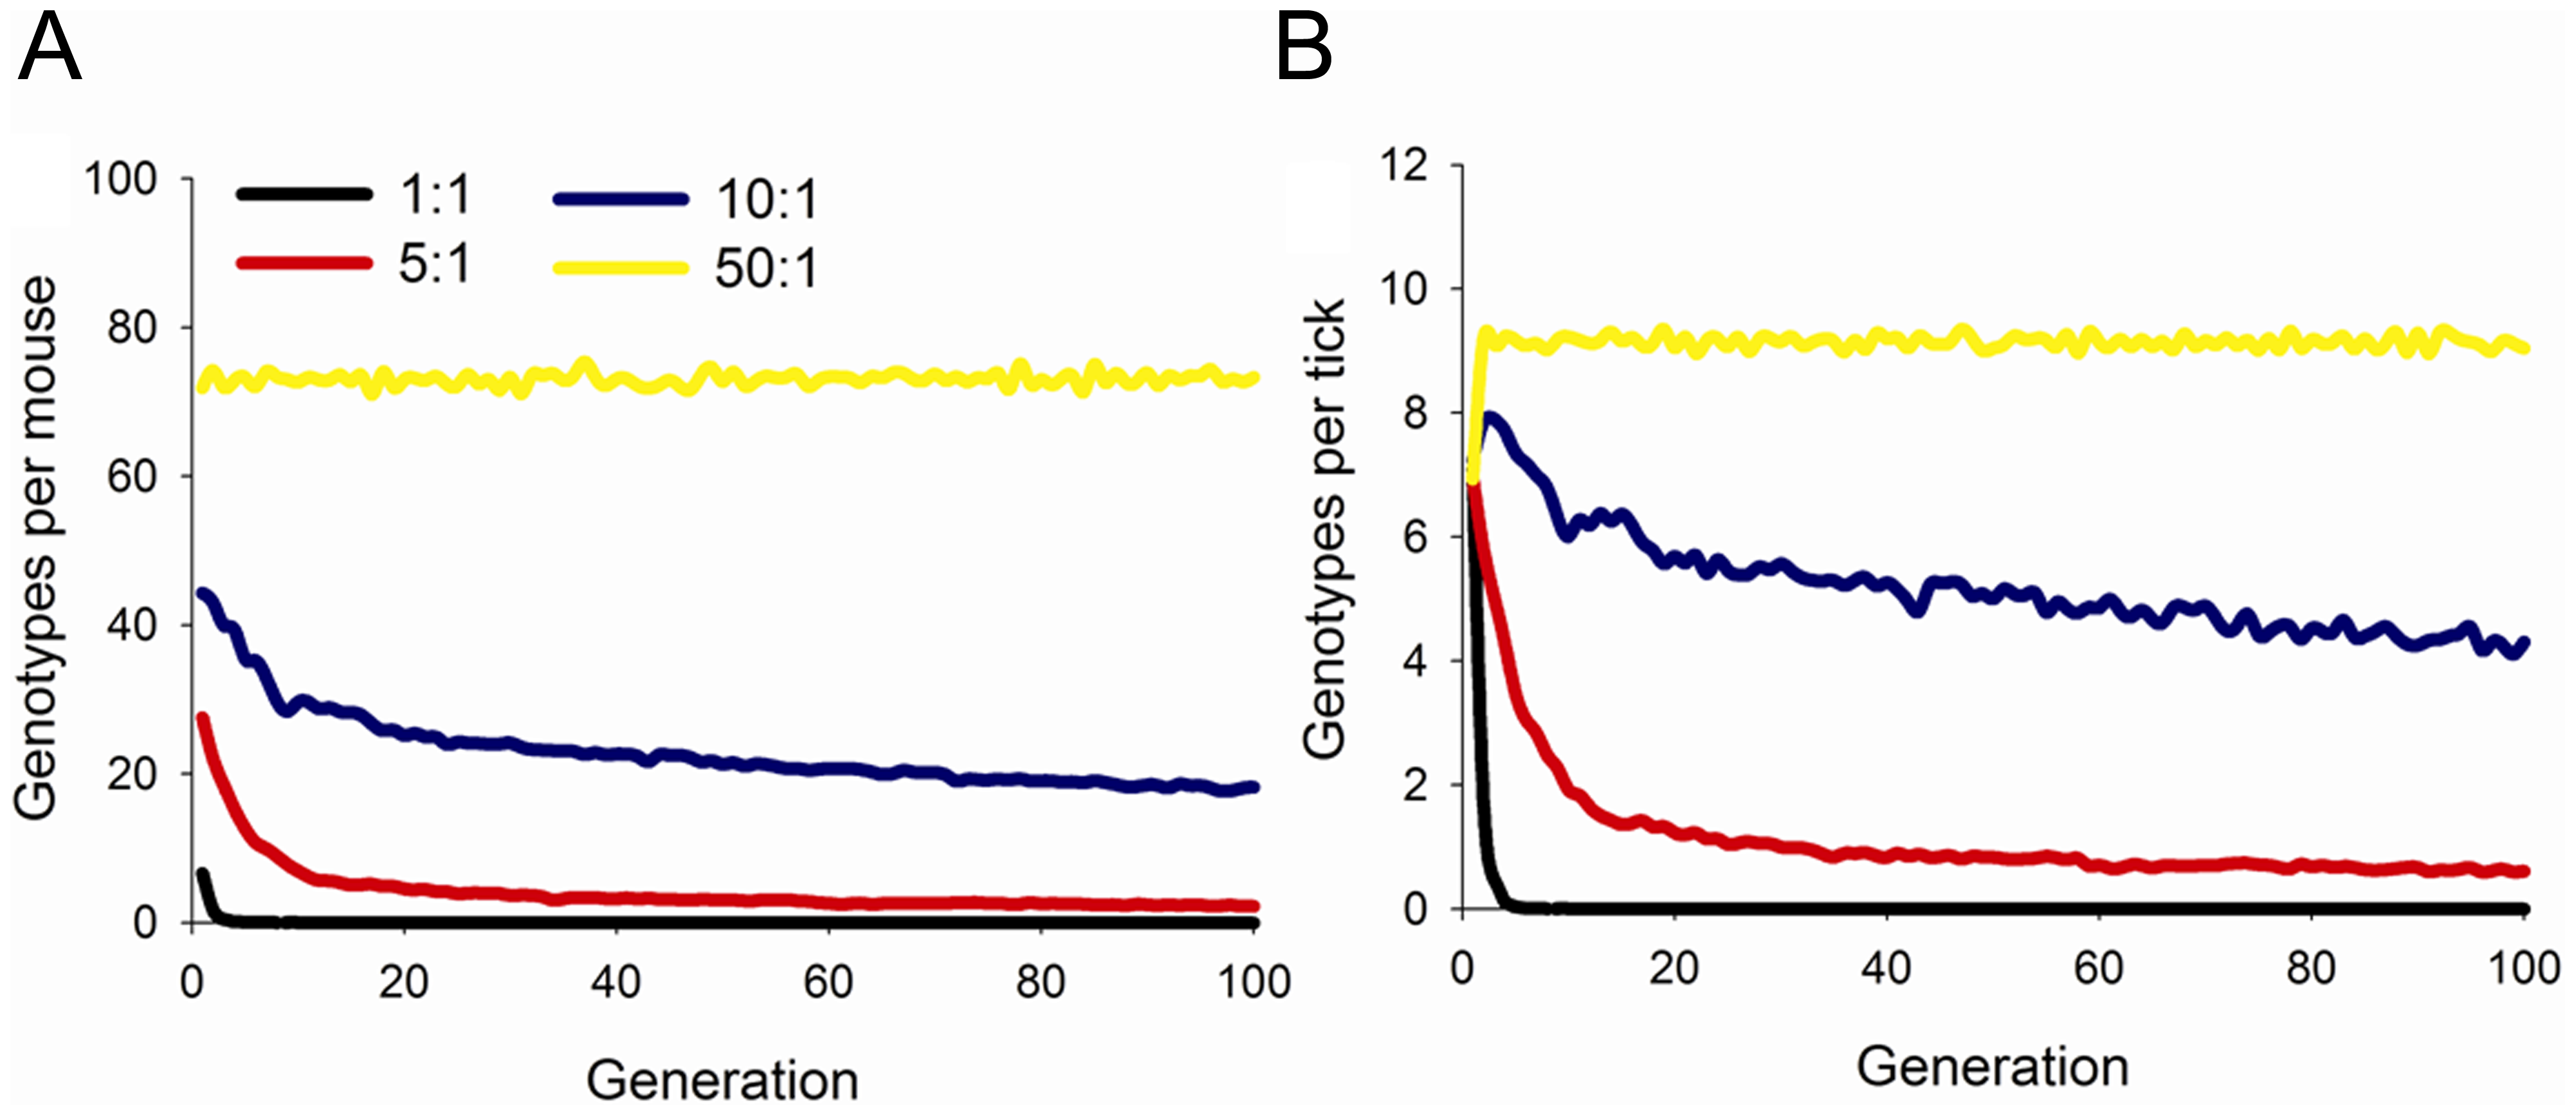 Maintenance of genotypic diversity in mice and ticks over 100 generations.